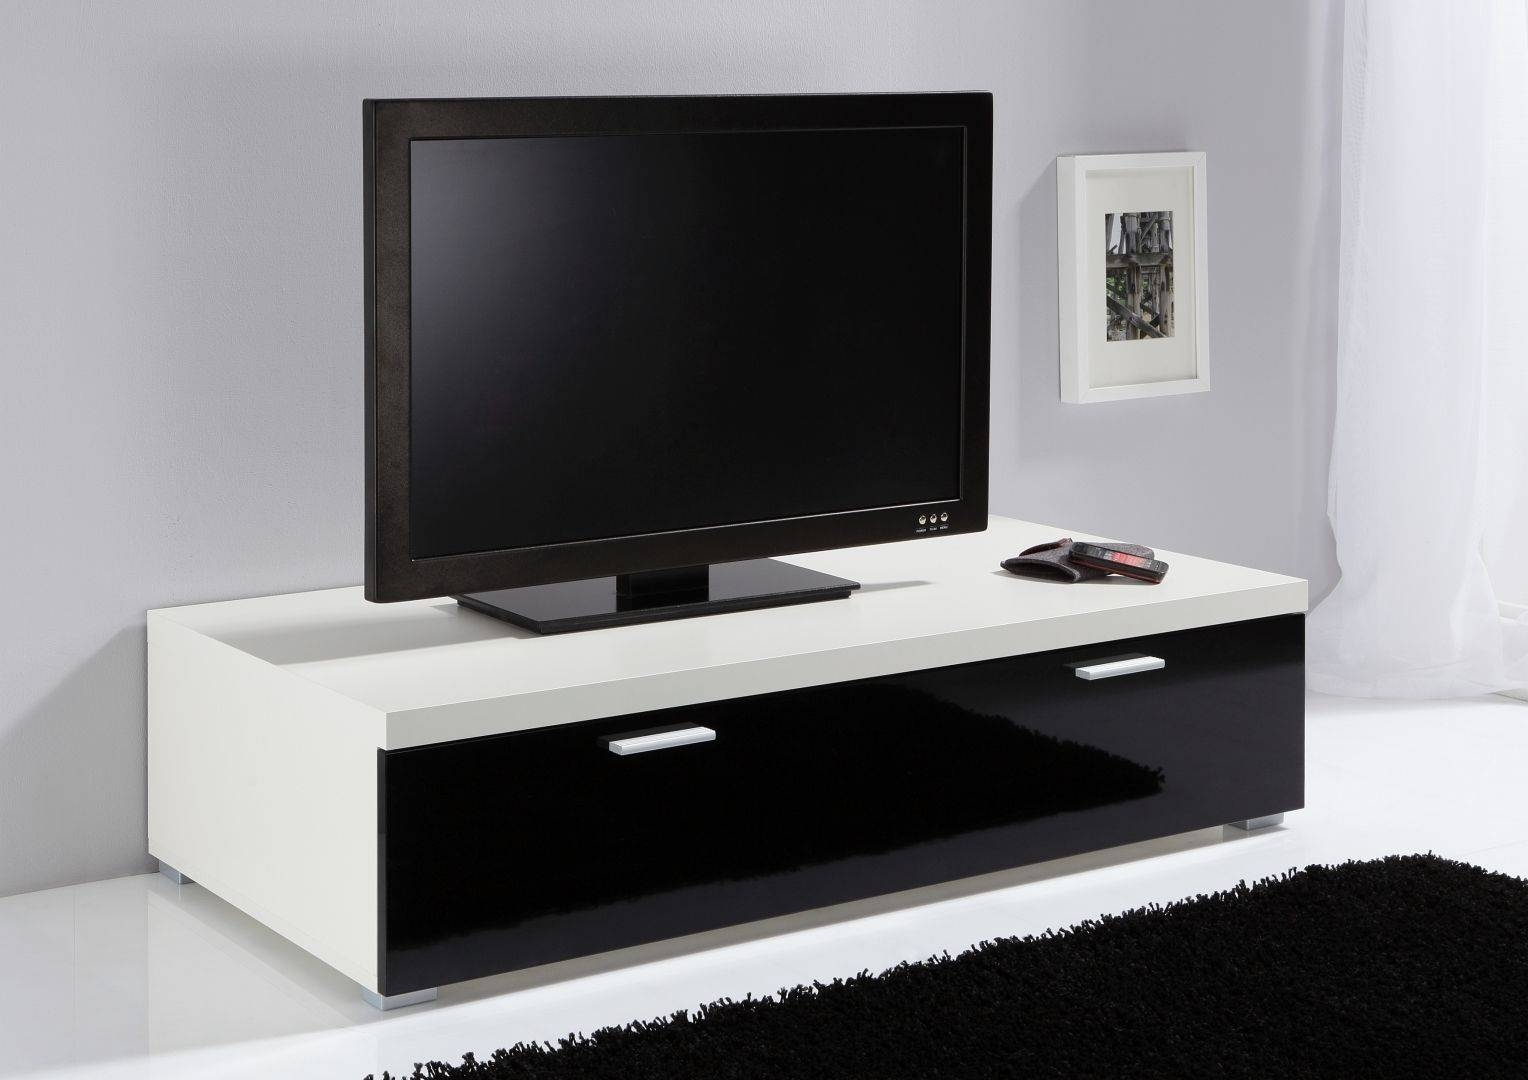 Modanuvo Low Tv Unit, Tv Cabinet, Tv Stand Off White & Black High Inside Low Tv Units (View 7 of 15)